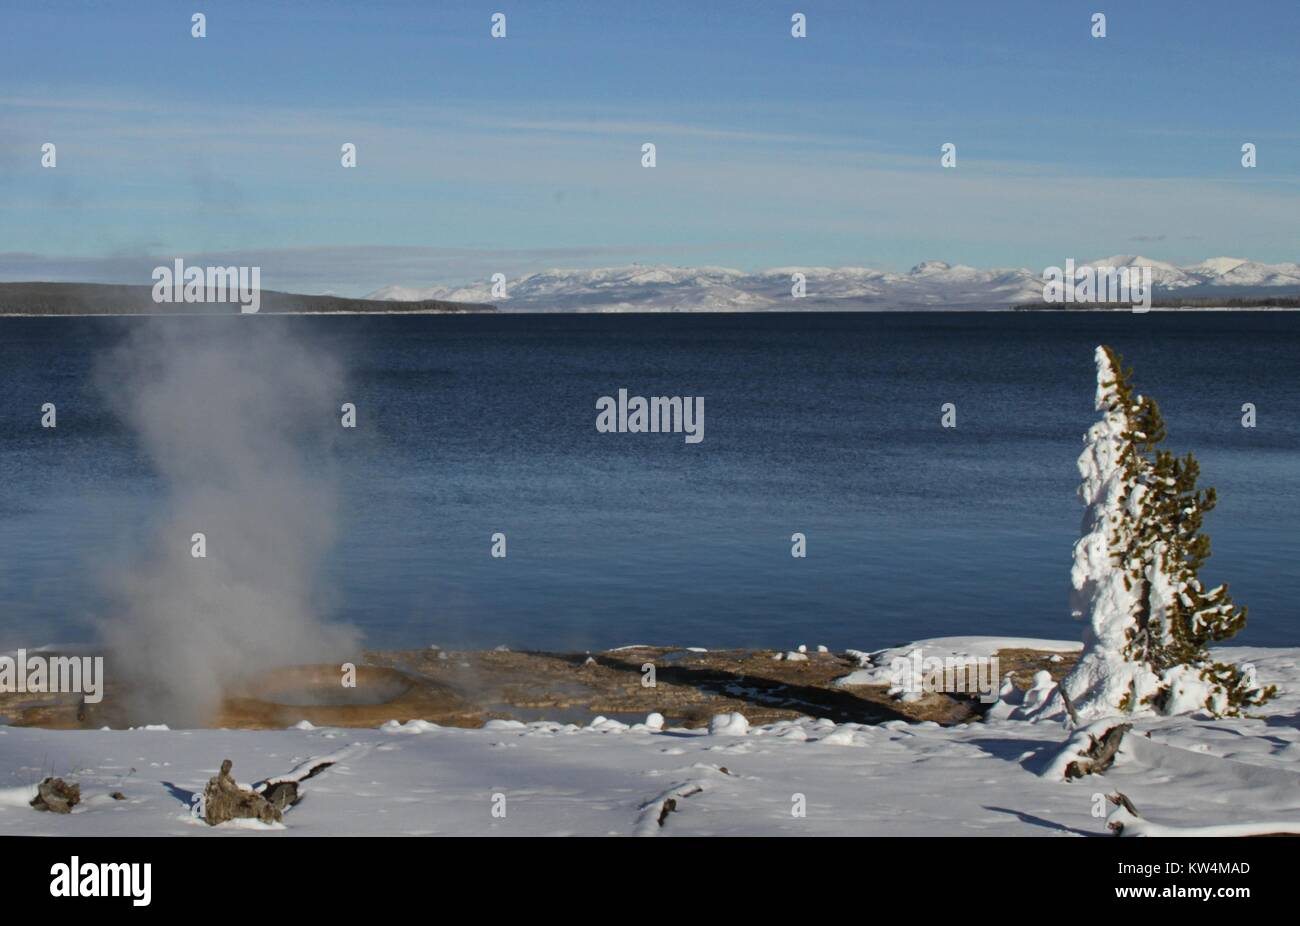 Hot spring on the shore of the West Thumb of Yellowstone Lake, Yellowstone National Park, Wyoming, November 19, - Stock Image